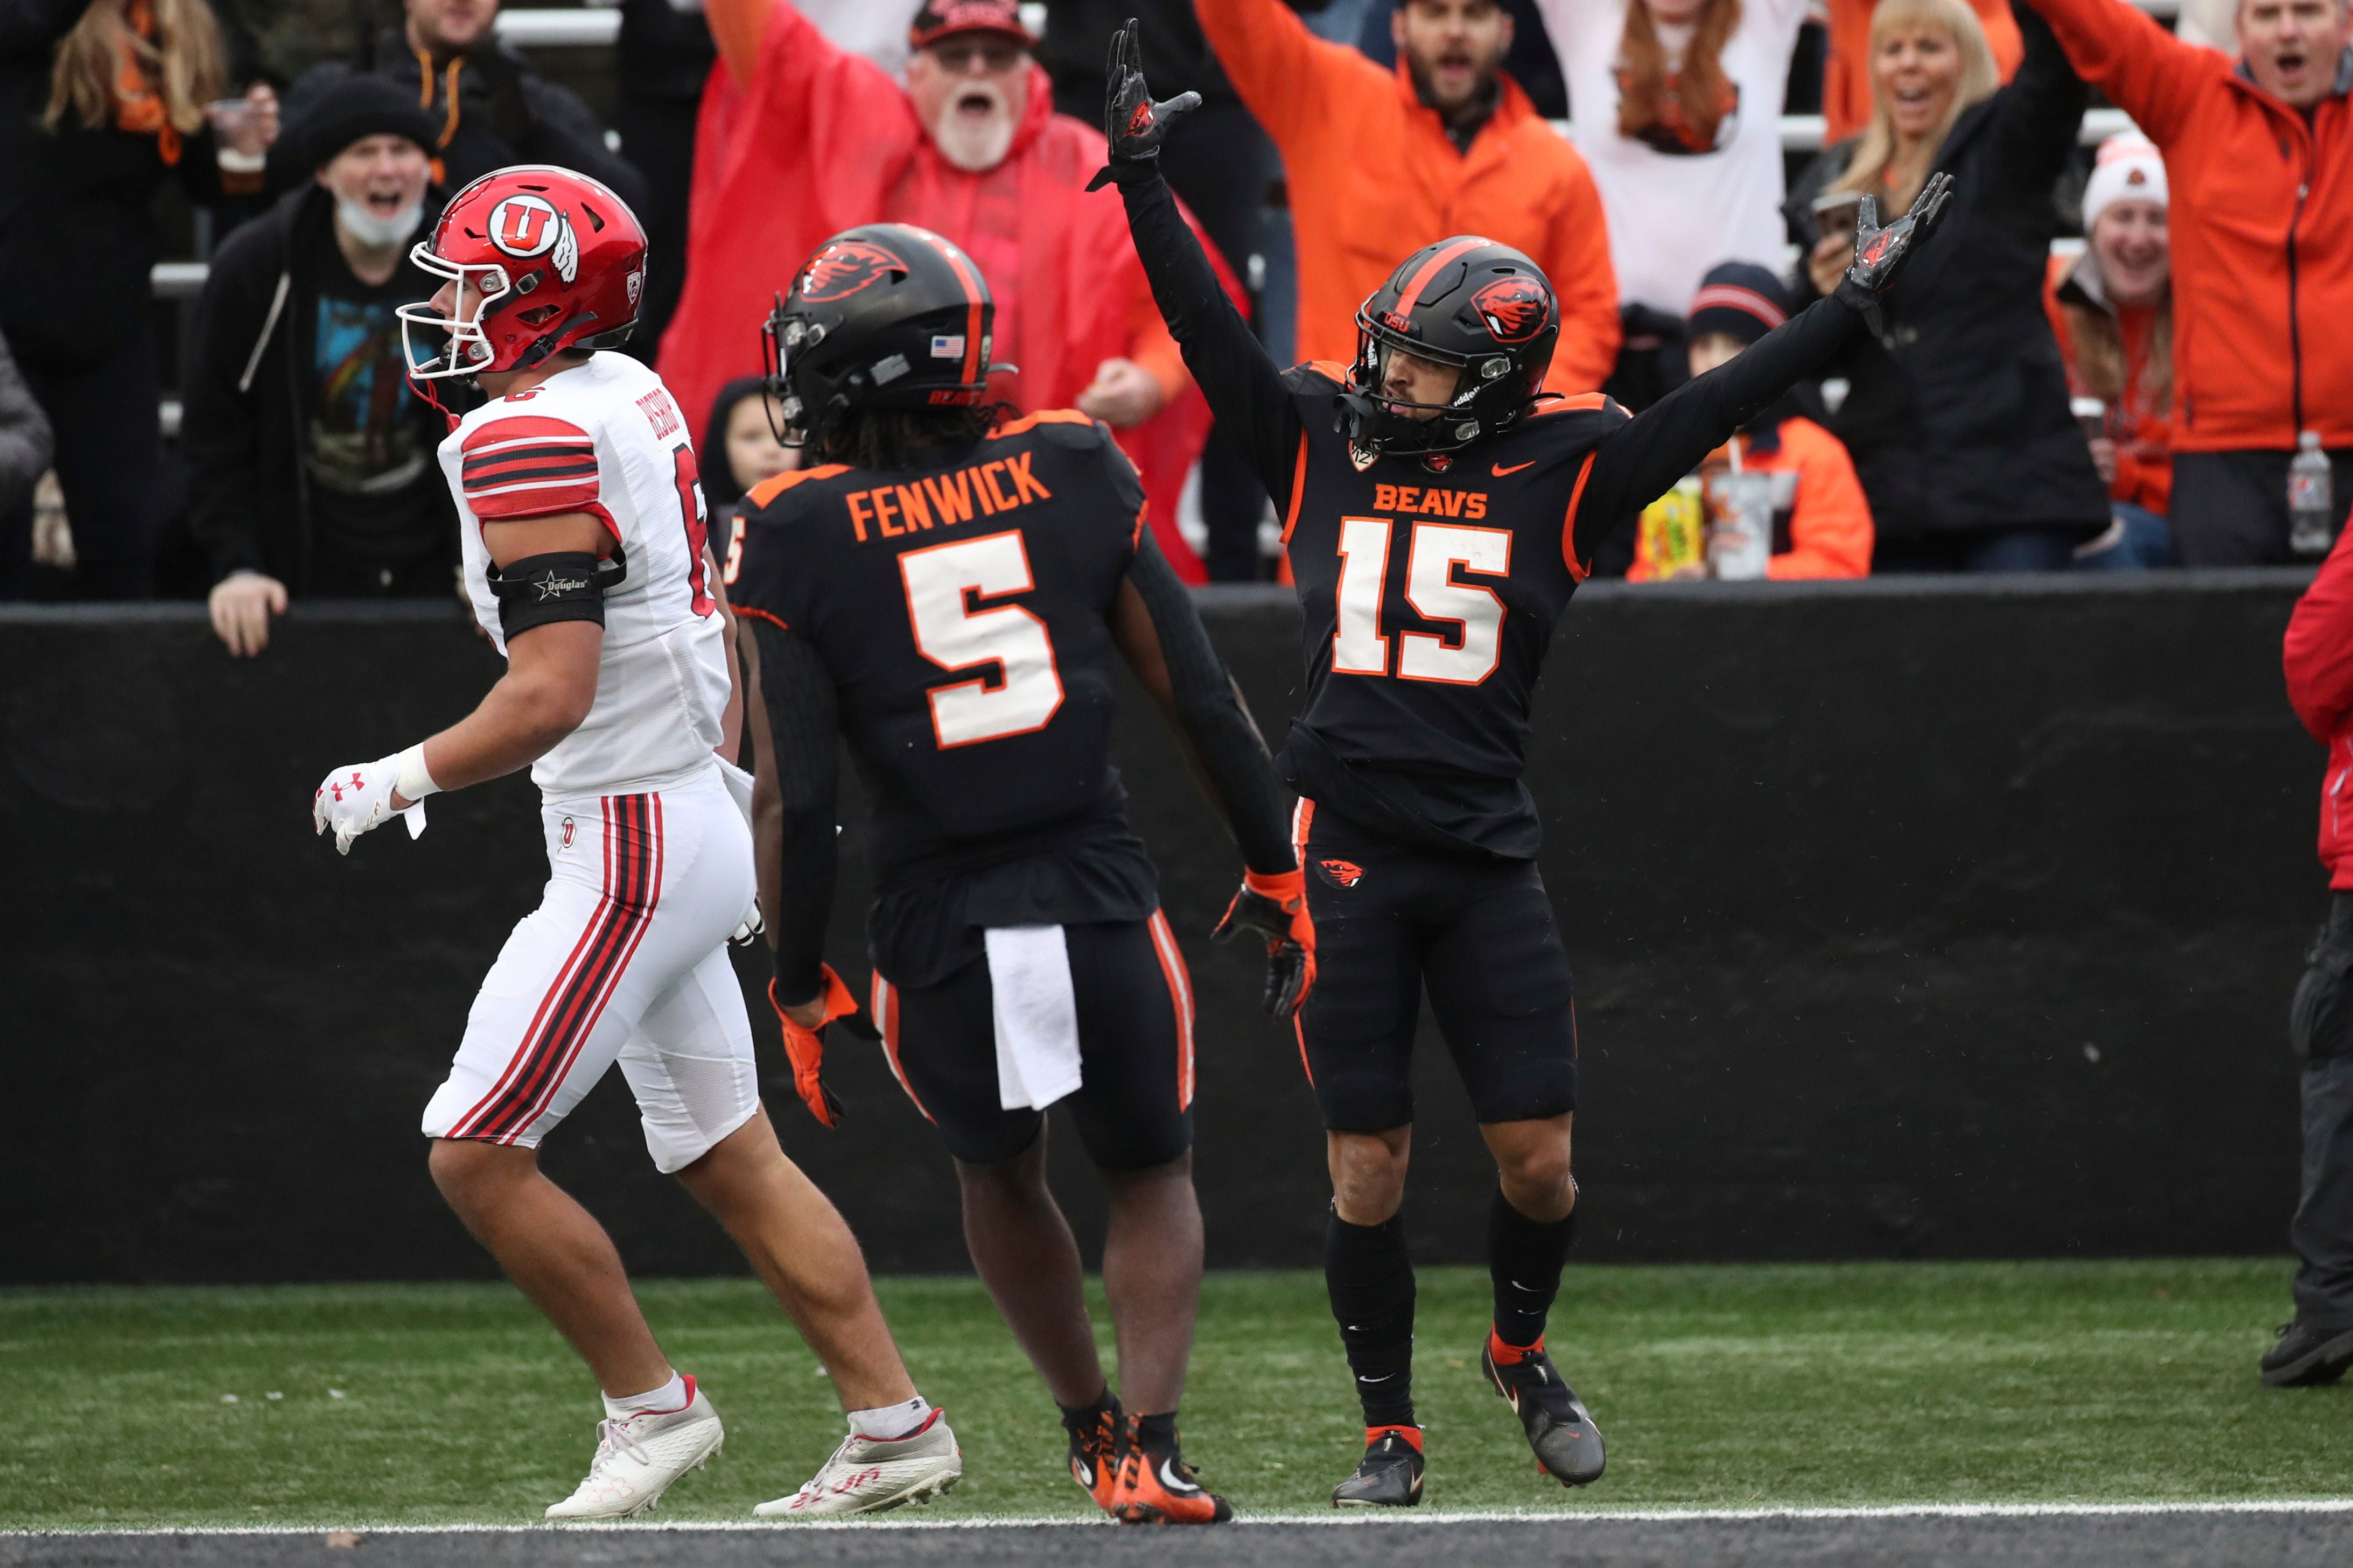 Oregon State beats Utah, remains tied for Pac-12 North lead